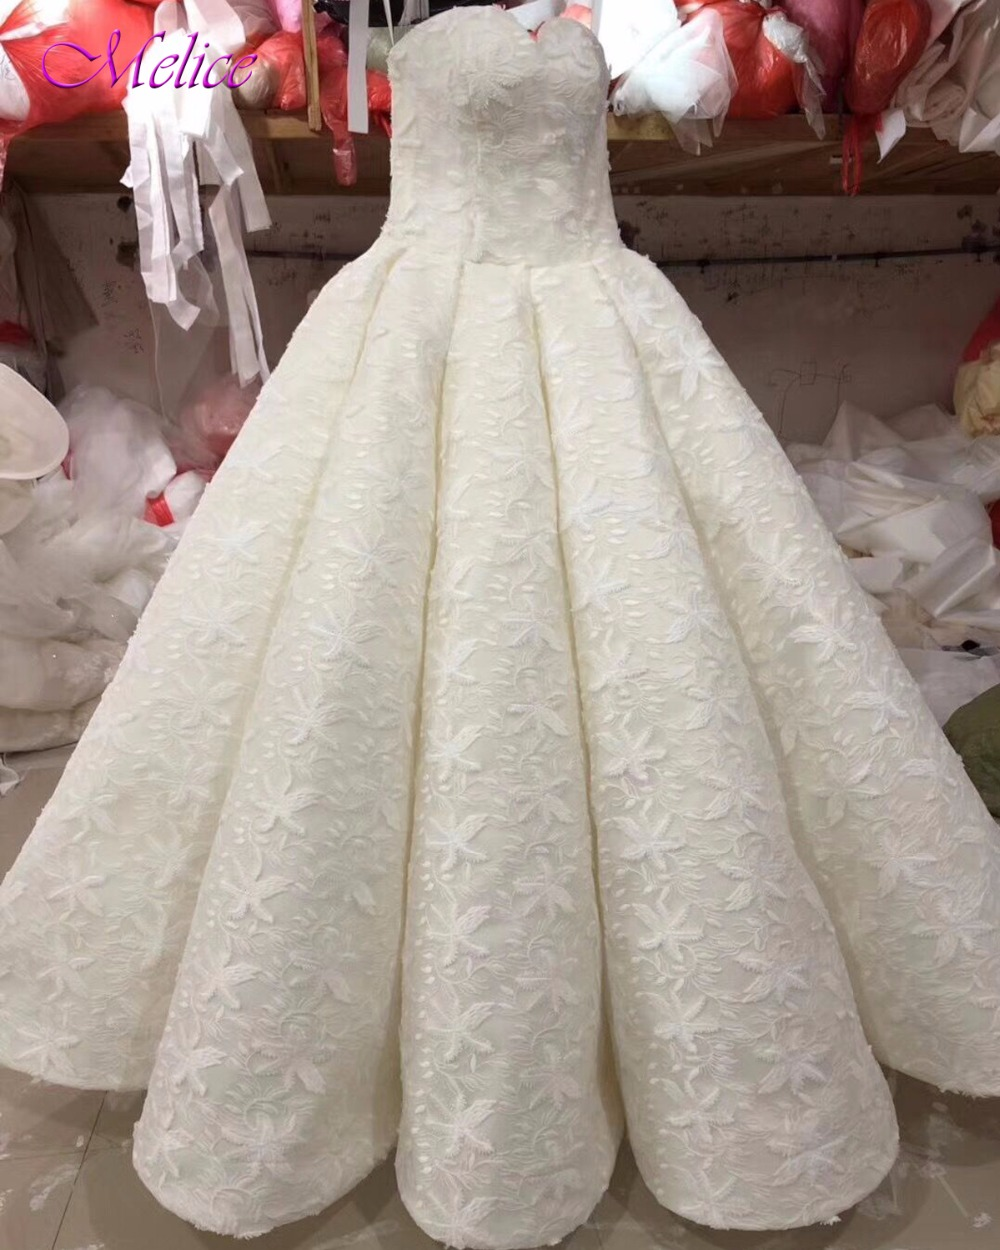 Melice Elegant Strapless Shoulder Ball Gown Wedding Dresses 2017 Glamorous Lace Chapel Train Bride Gown Vestido de Noiva